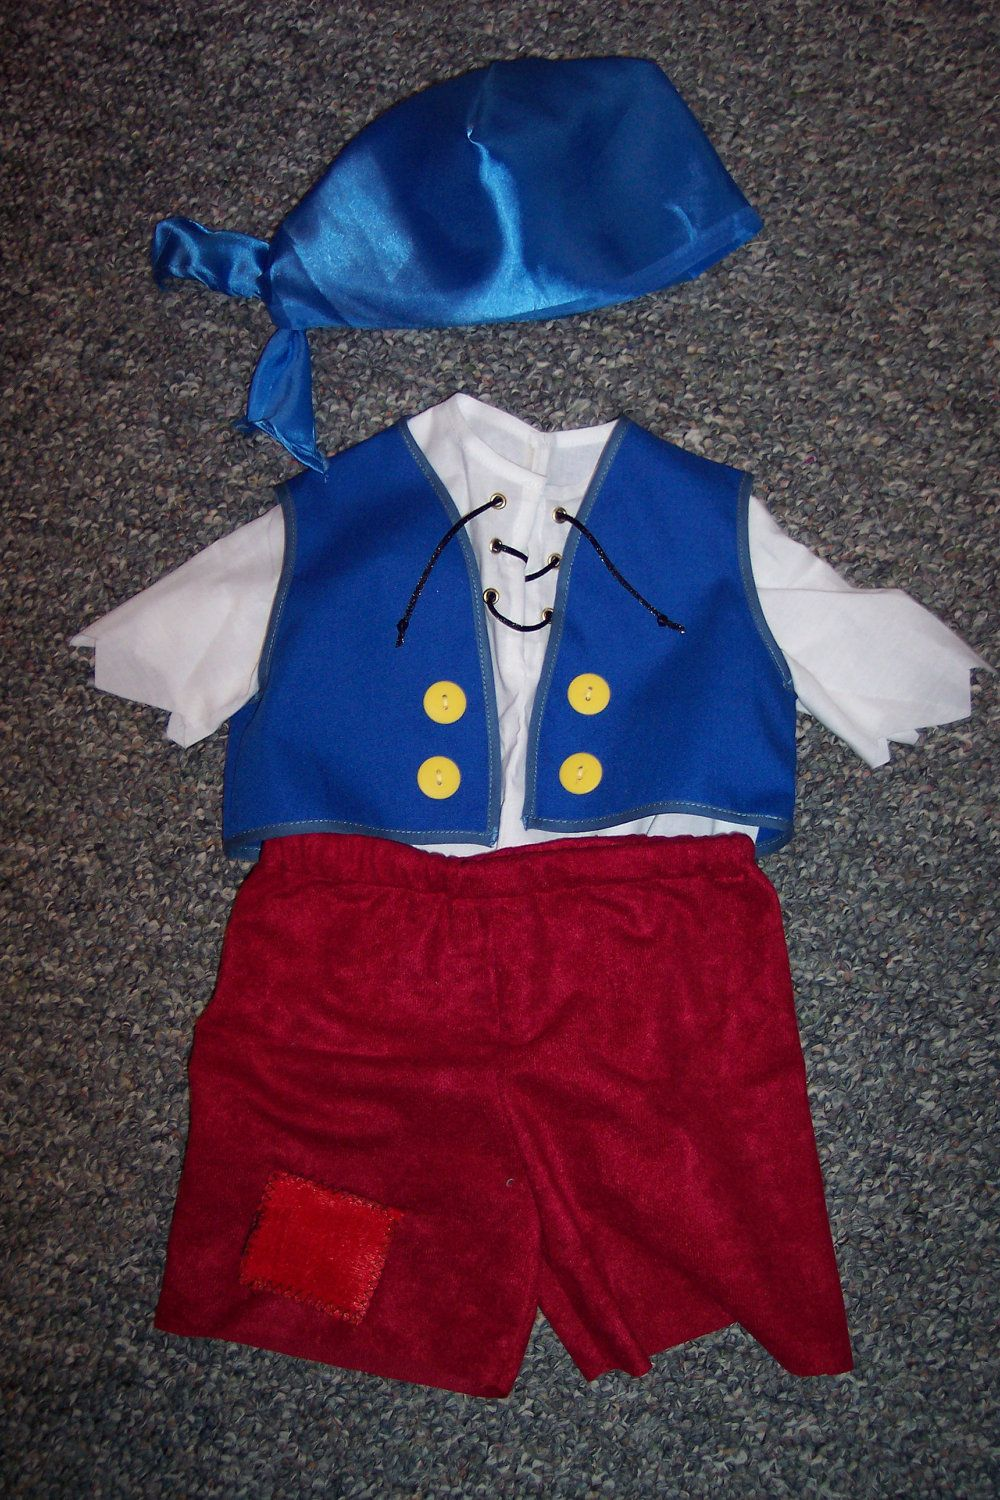 cubby jake and the neverland pirates halloween costume